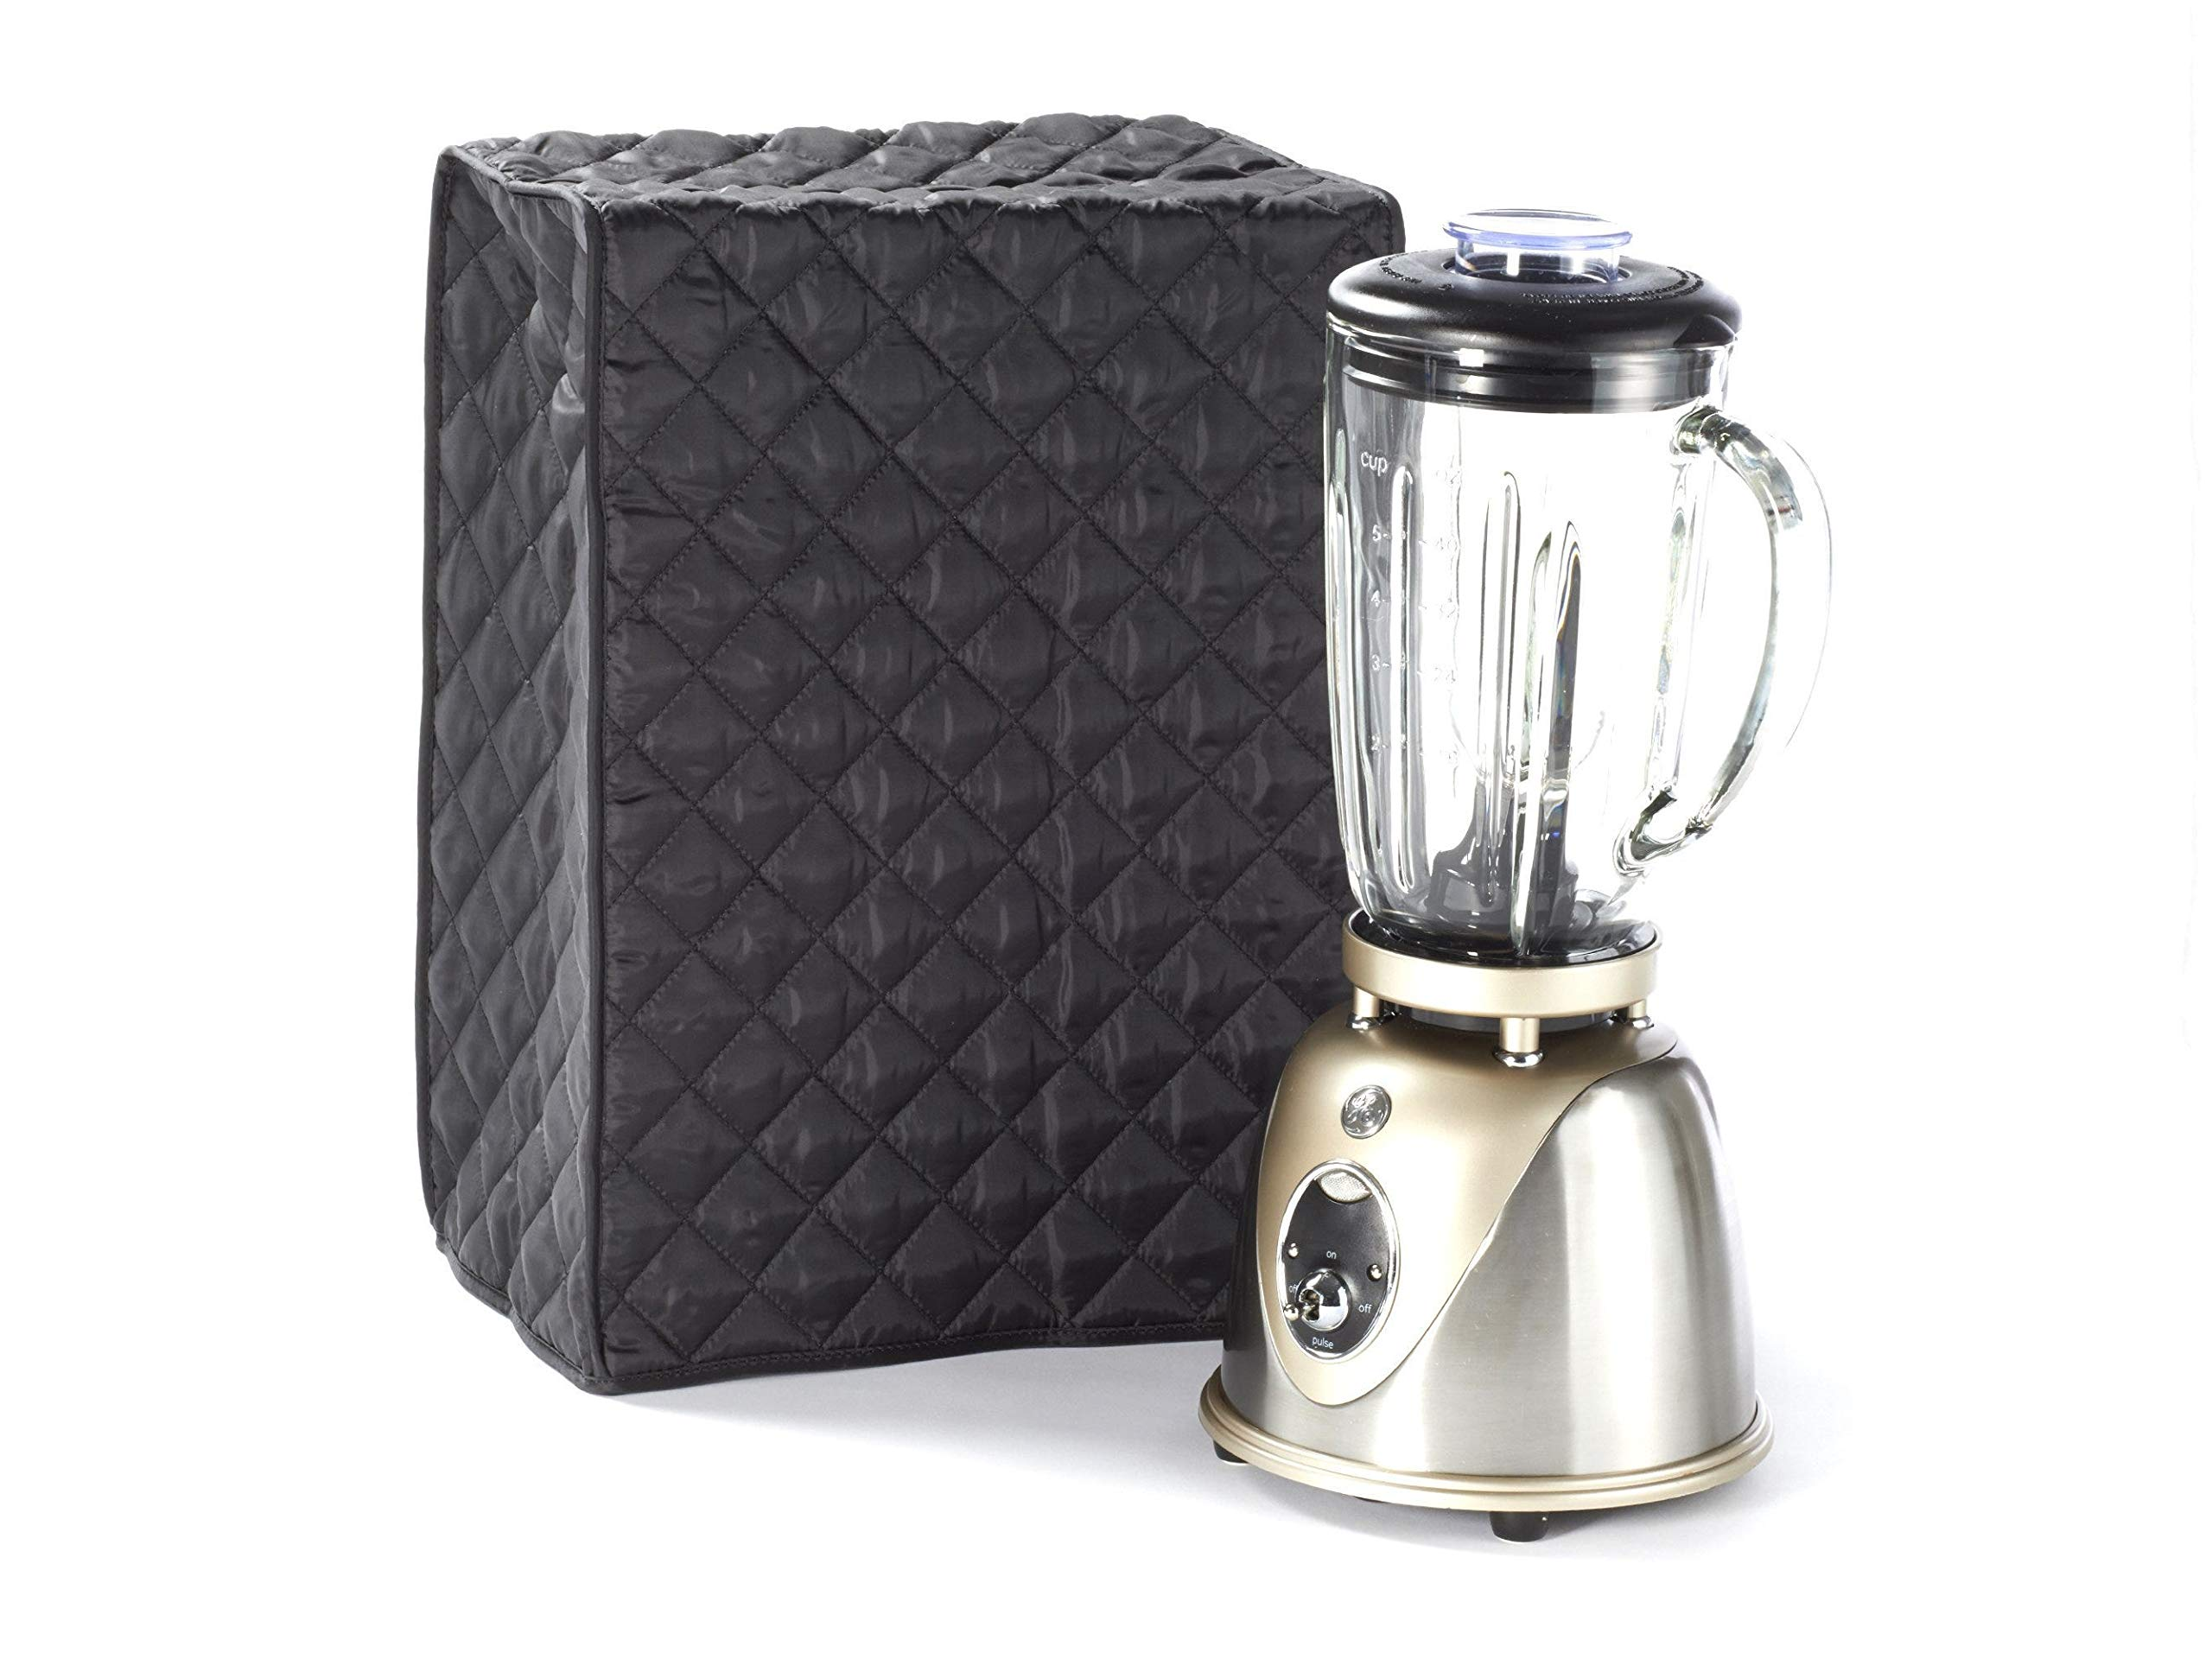 Covermates Keepsakes - Blender Cover – Dust Protection - Stain Resistant - Washable – Appliance Cover - Black